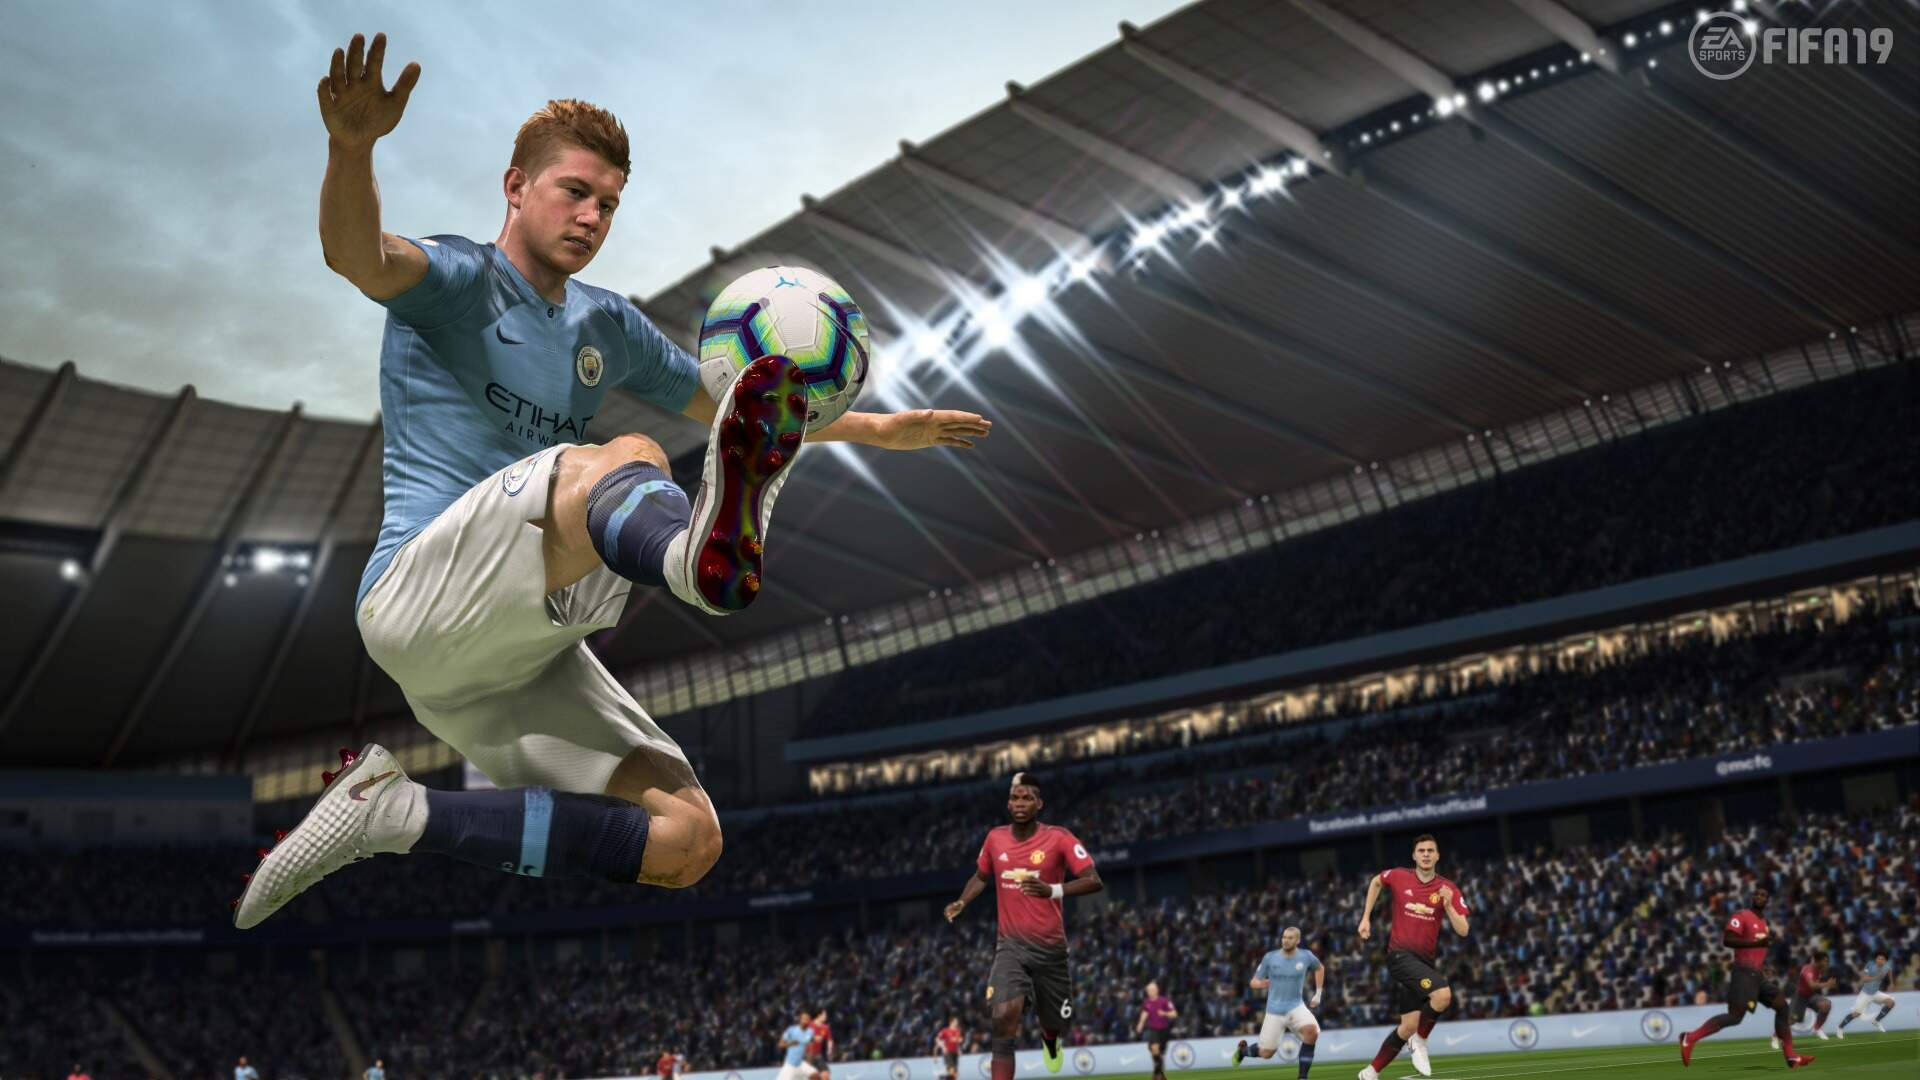 FIFA 19 Ultimate Team Tips - How to Build the Best Ultimate Team